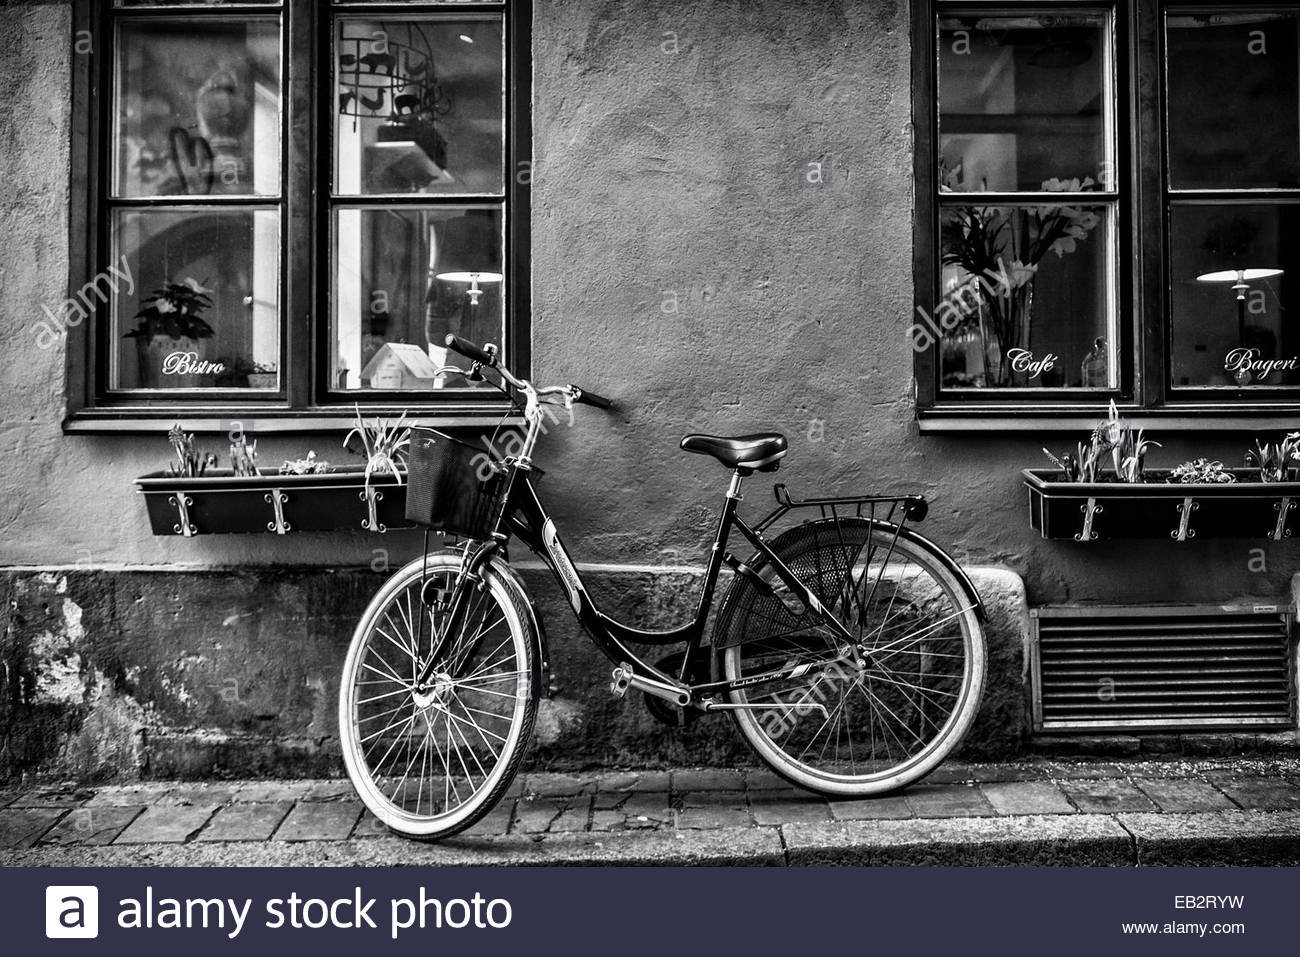 A bicycle parked on a sidewalk below two windows. - Stock Image